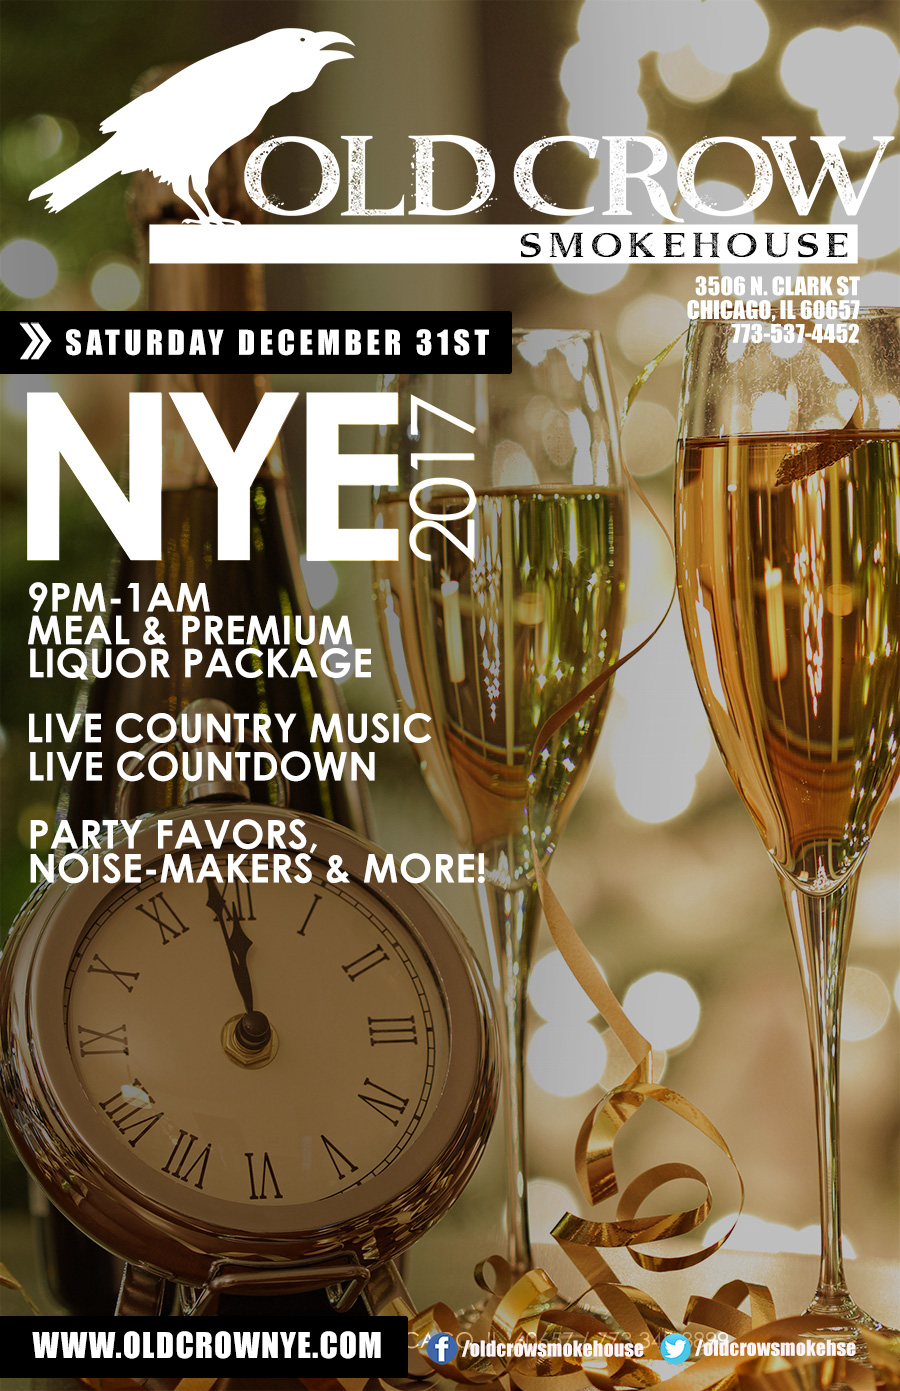 Old Crow Wrigleyville New Year's Eve Party - Join us for Live Country Music, Countdown, Party Favors & More!